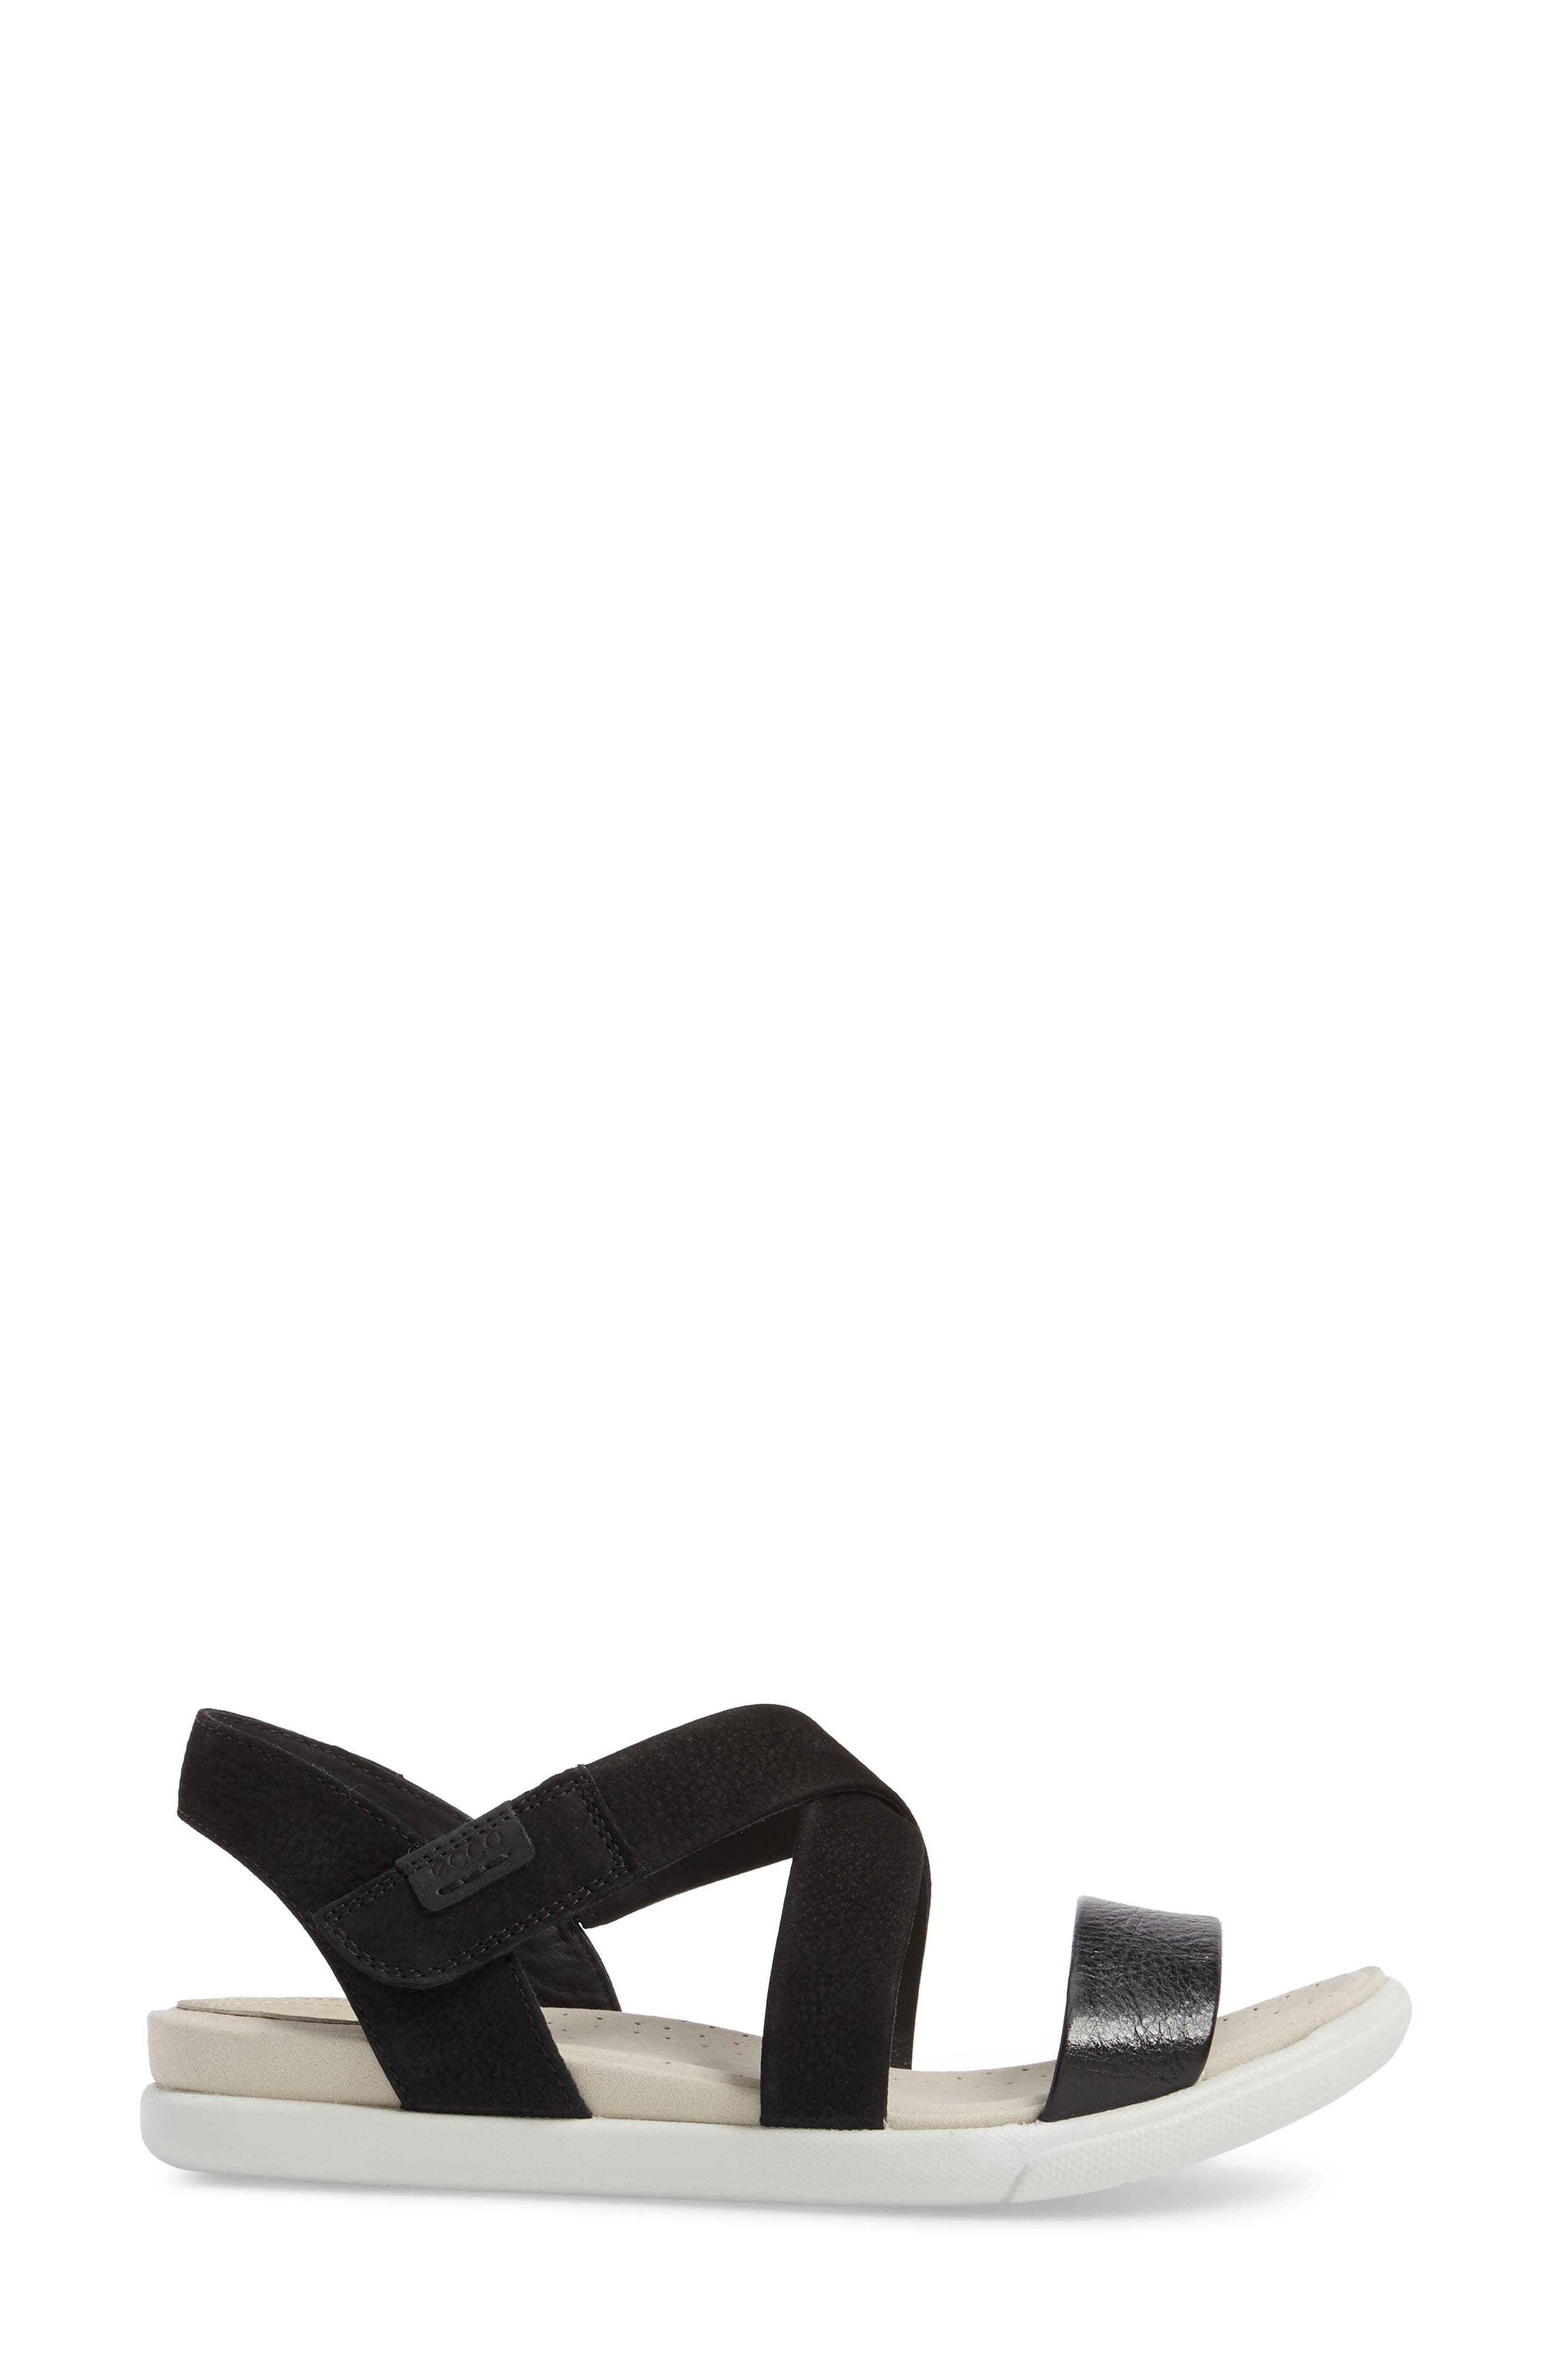 Damara Cross-Strap Sandal,                             Alternate thumbnail 15, color,